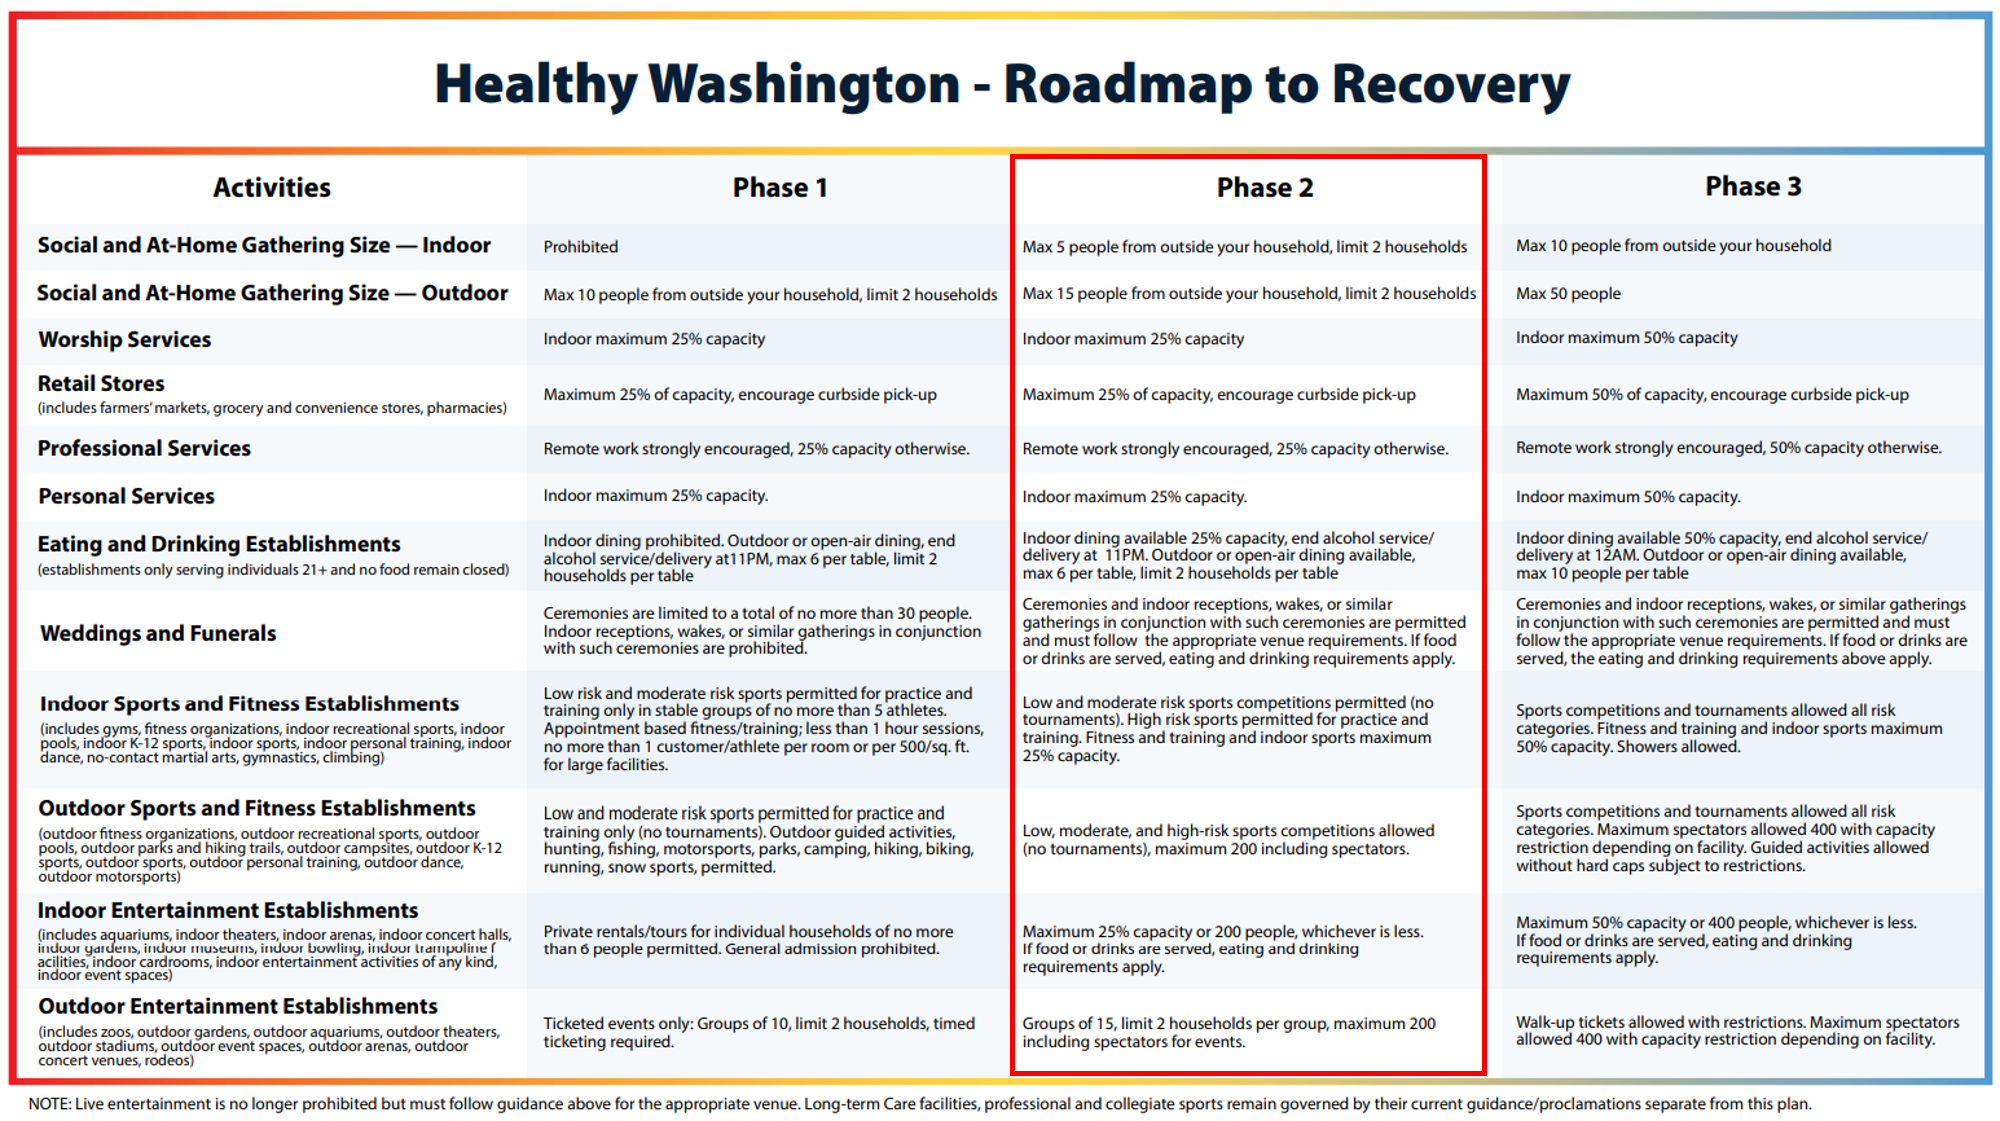 HealthyStartWA Roadmap to Recover 01-2021 - Phase 2